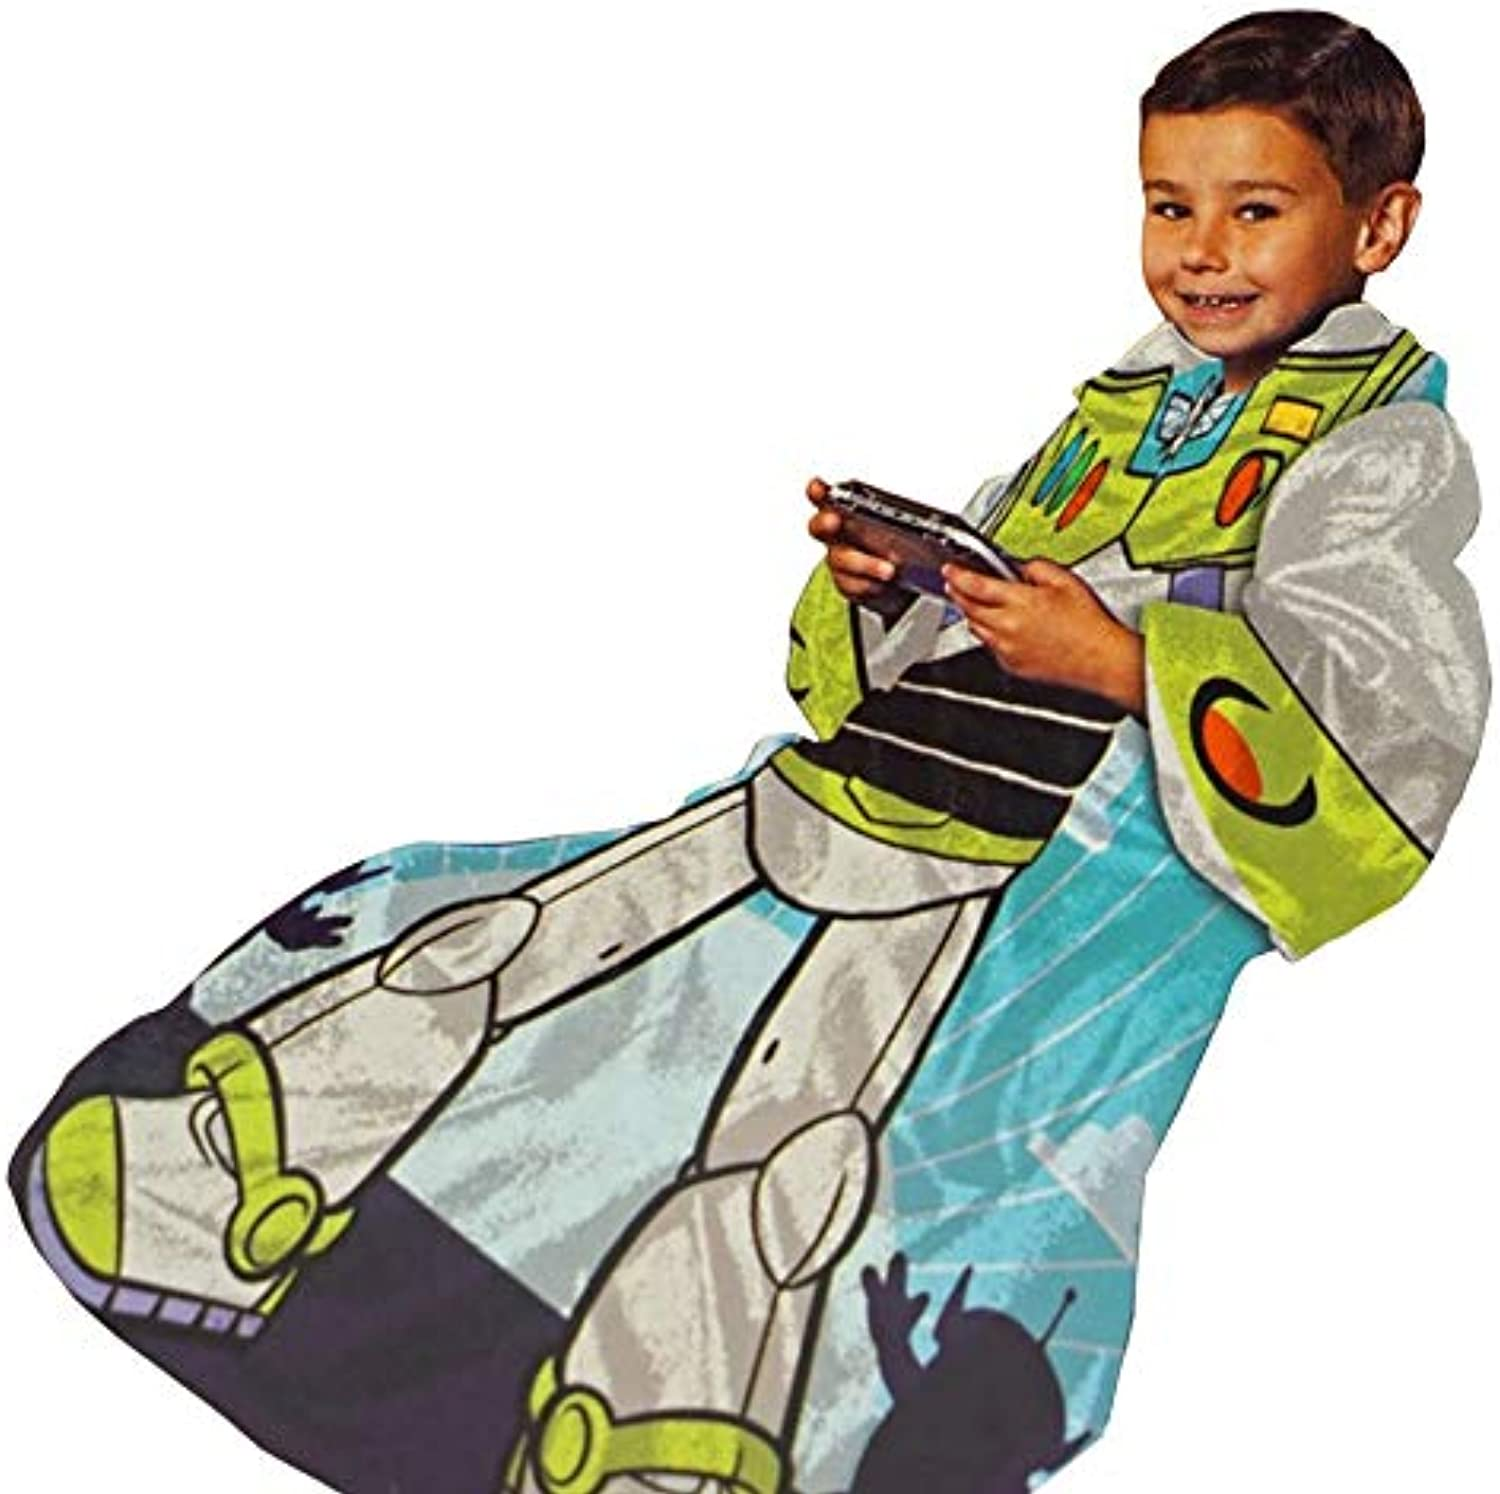 Buzz Lightyear Real Hero Blanket SLEEVES Comfy Throw YOUTH